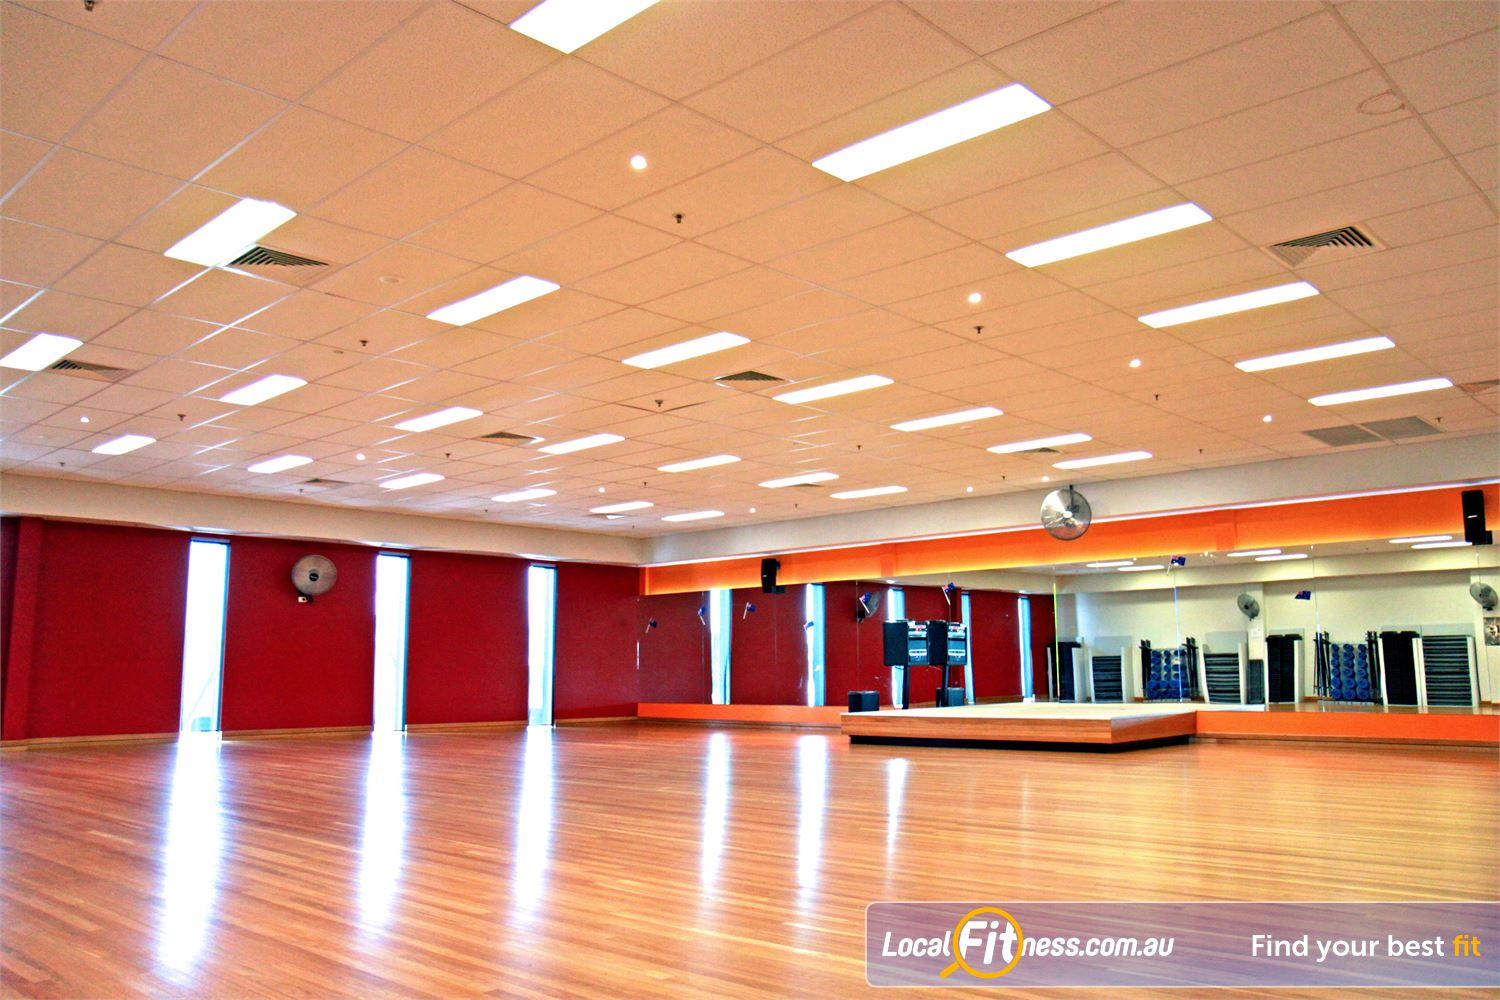 Goodlife Health Clubs Near West Ipswich Ipswich group fitness classes run daily.